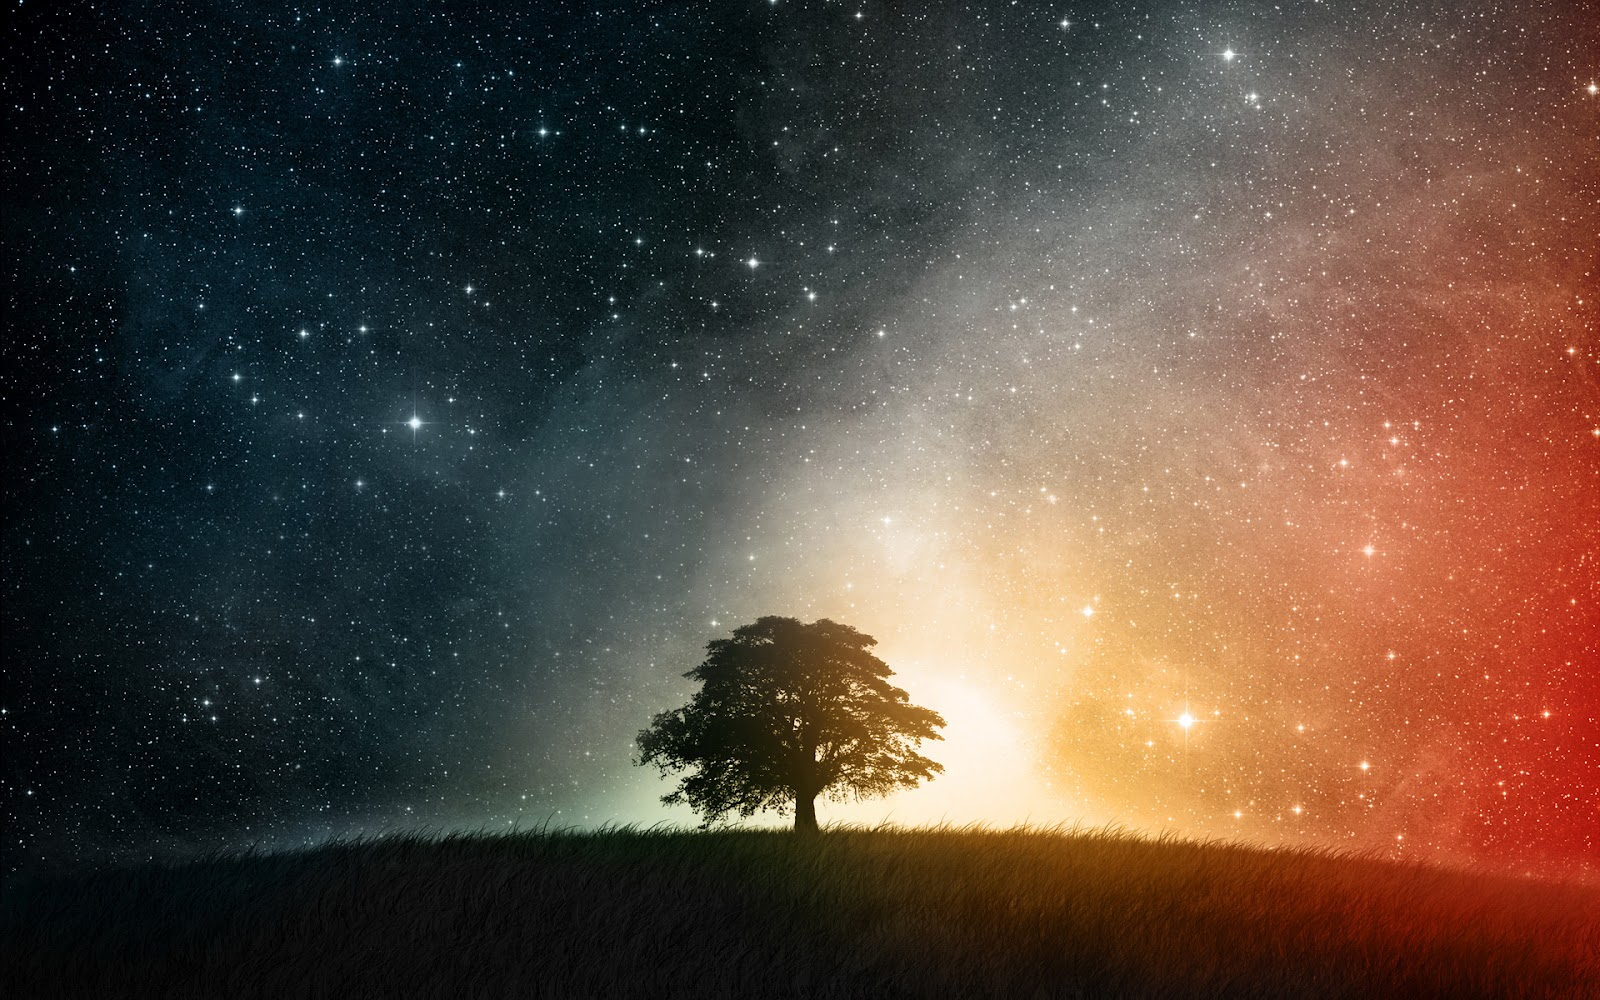 wallpapers hd night sky 1600x1000